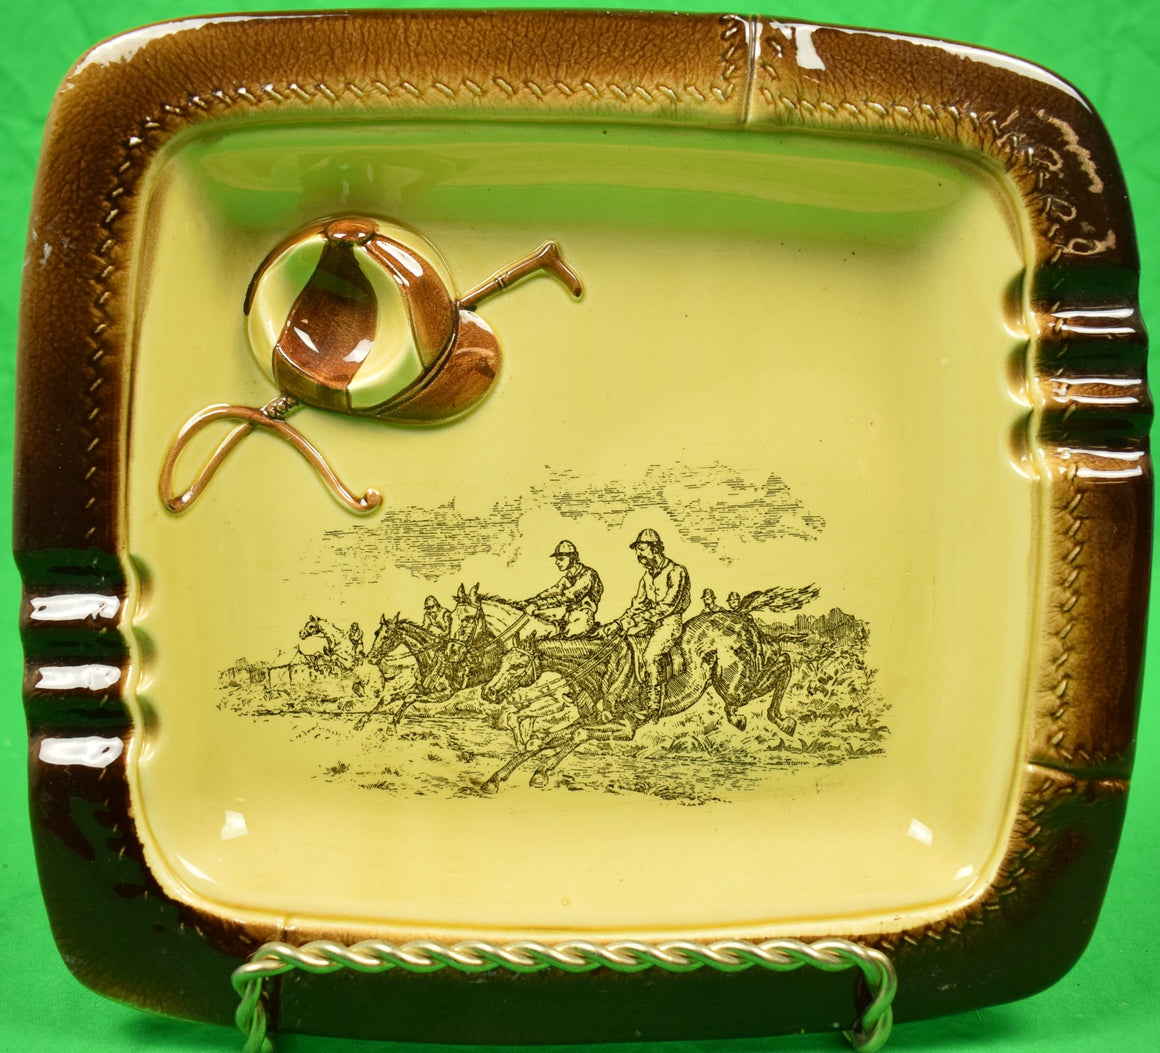 English Steeplechase w/ Jockey Cap & Riding Crop c1940s Ashtray